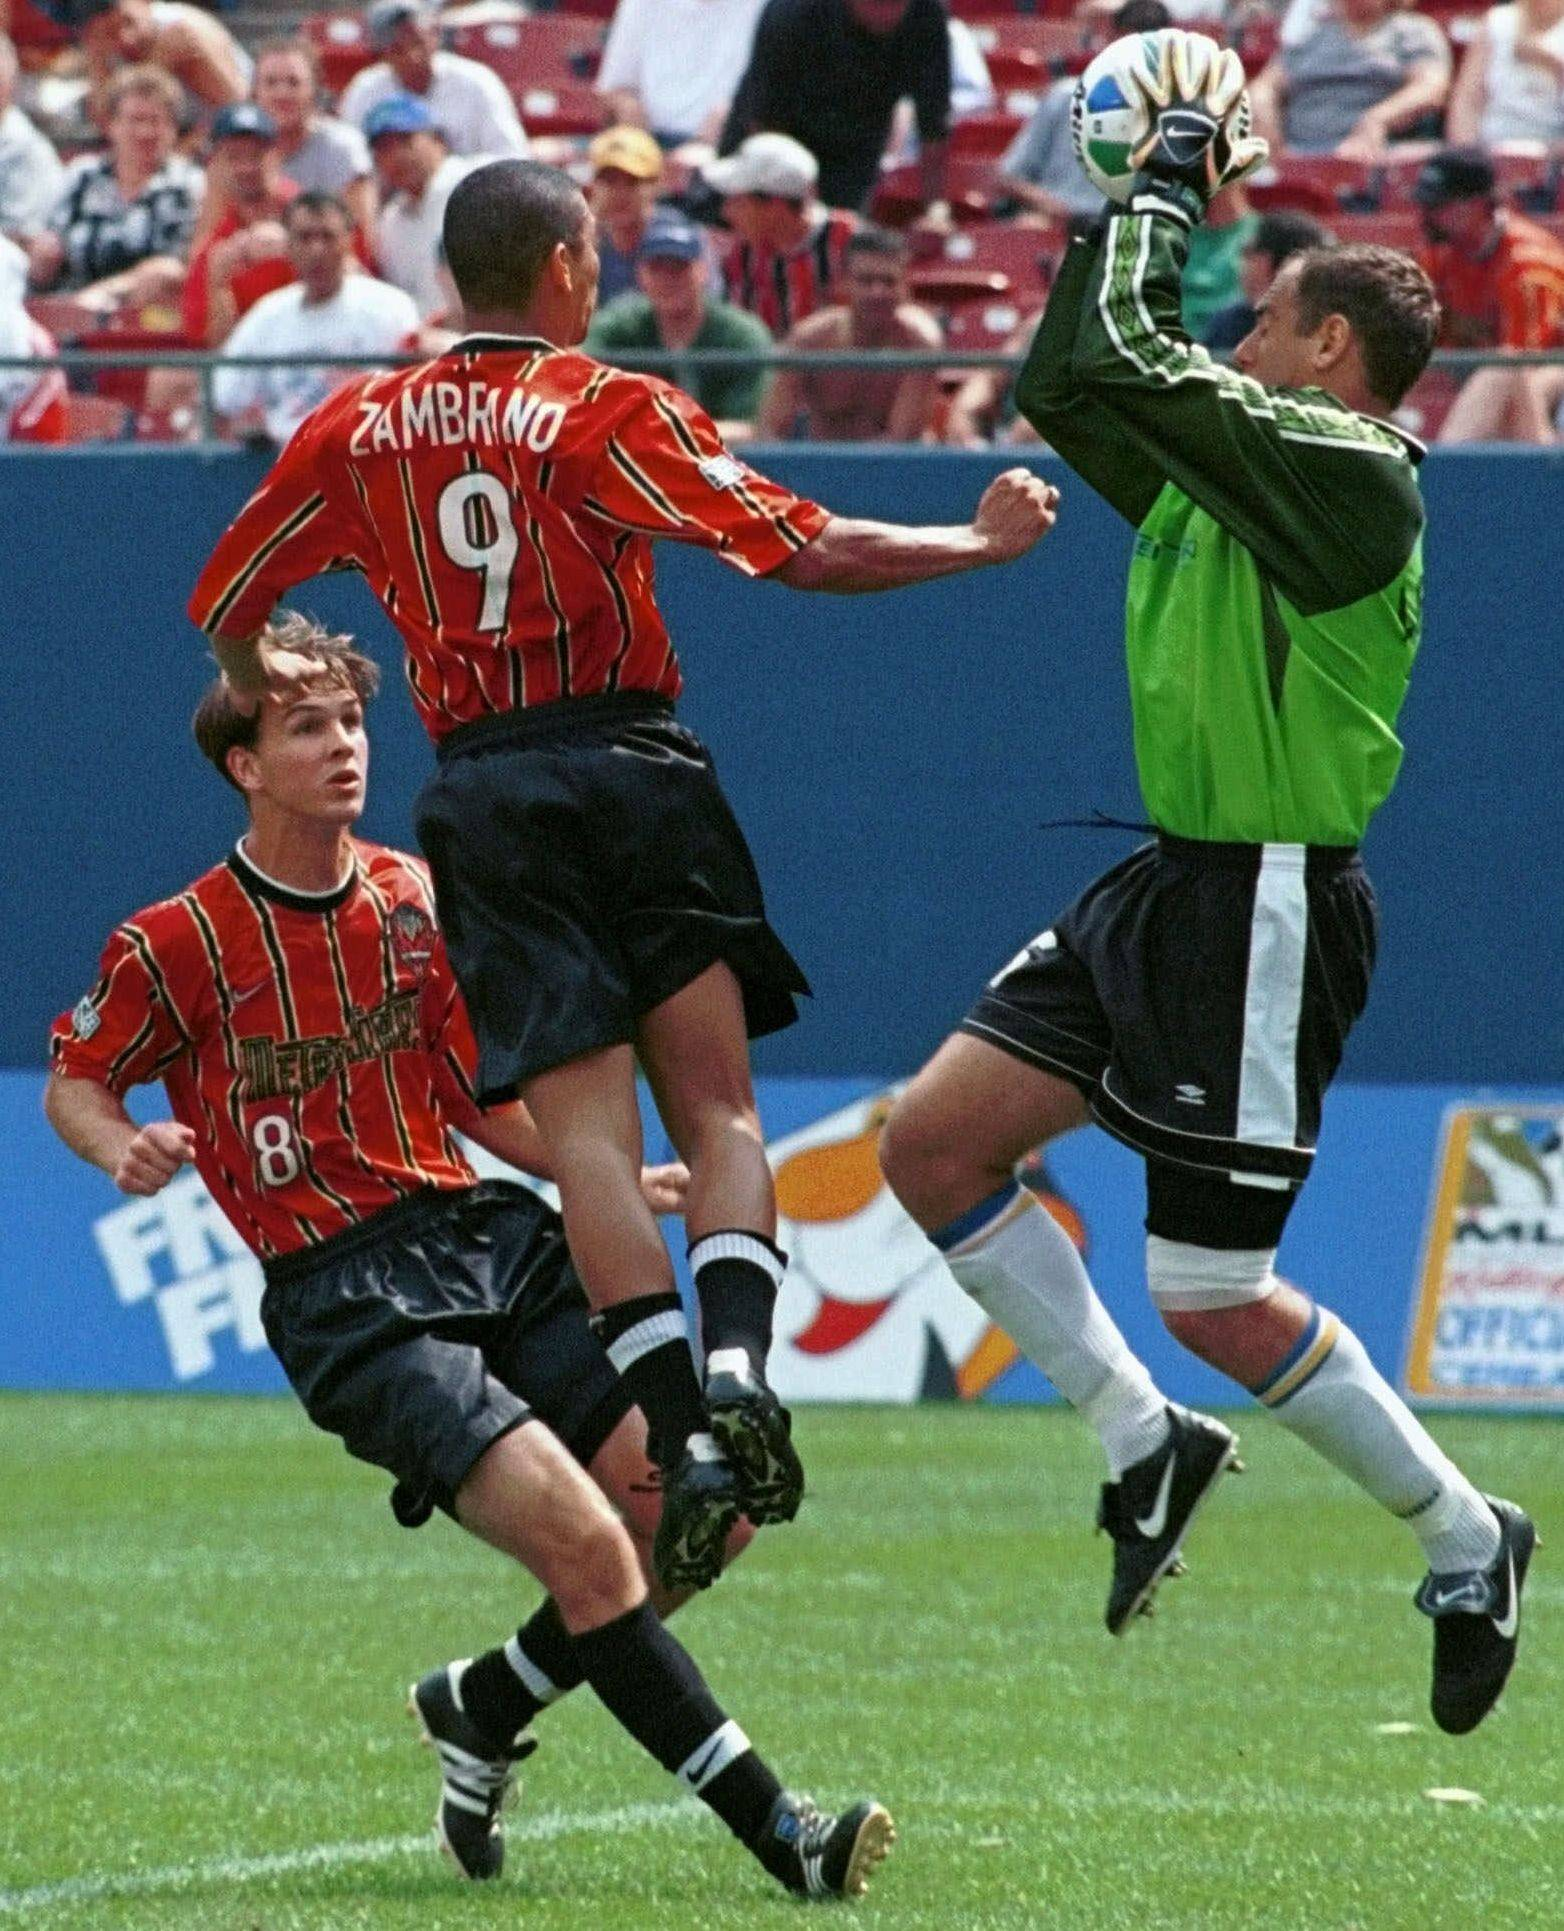 Miami Fusion goalkeeper Garth Lagerwey, right, saw action in this 1999 game. After retiring from MLS, Lagerwey made it back to the league to become general manager of the Real Salt Lake franchise.